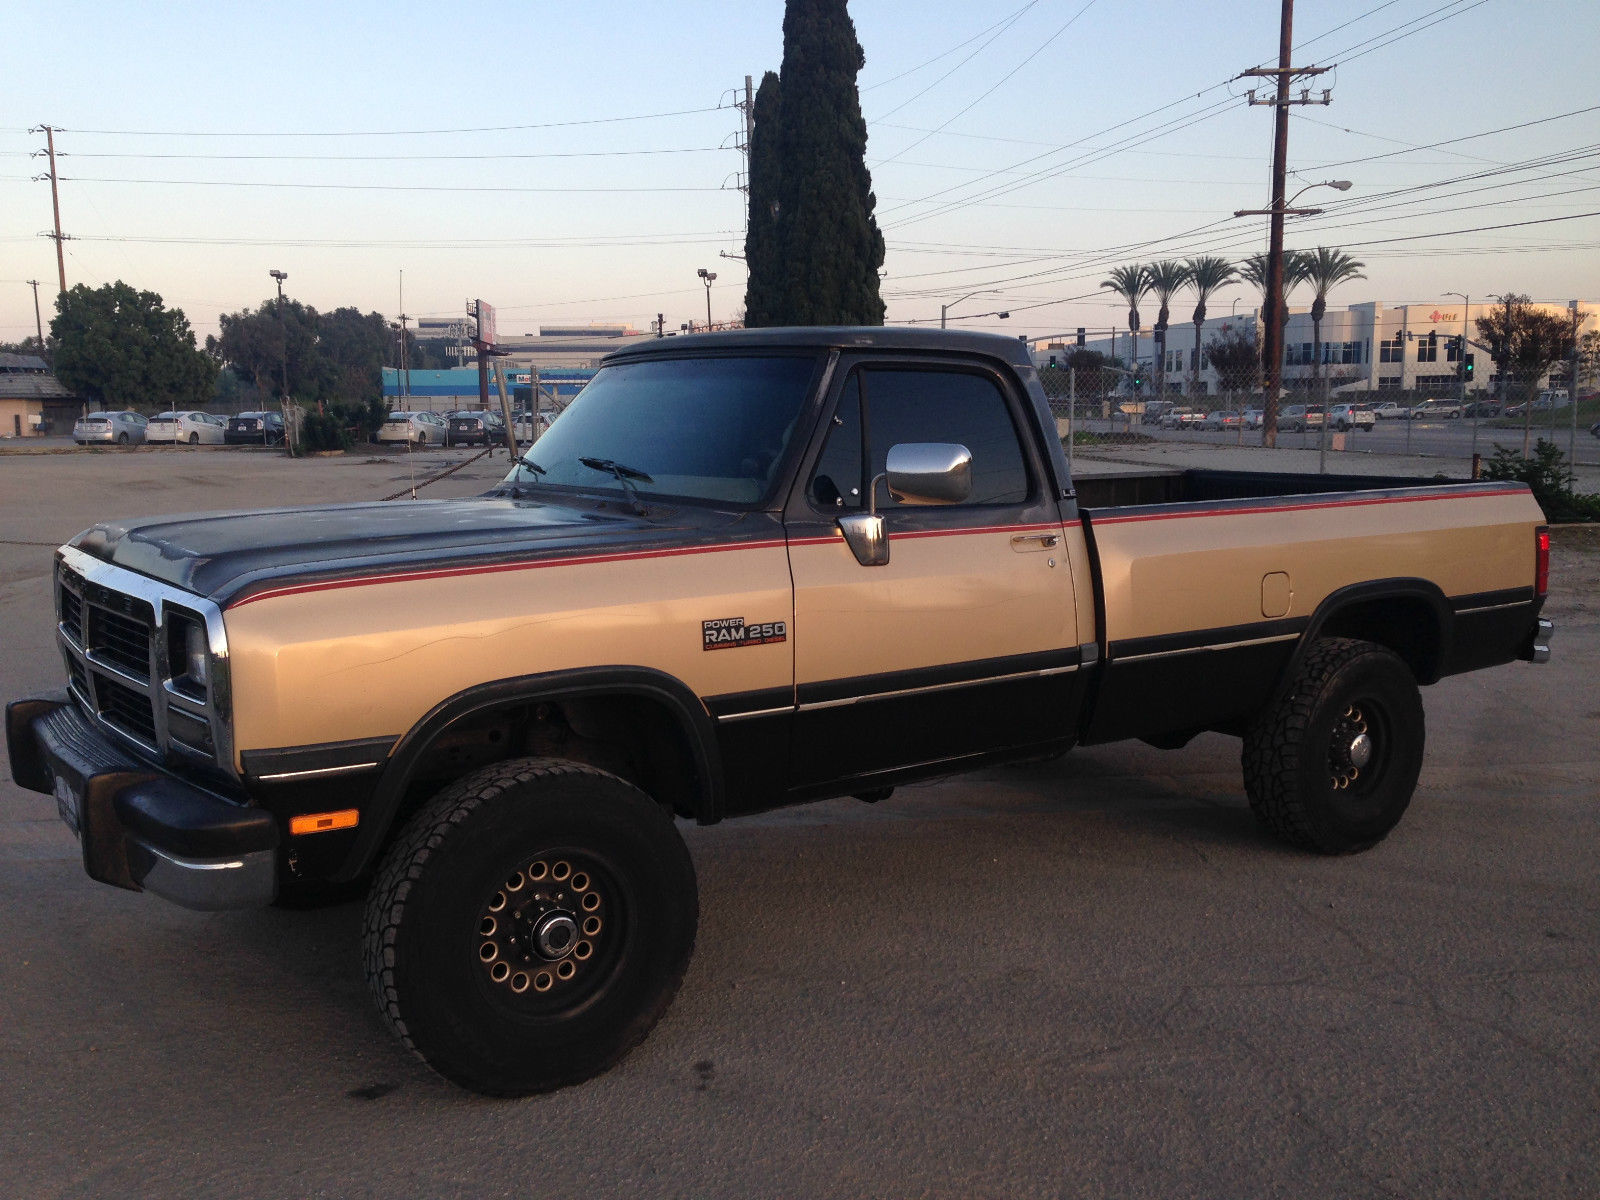 1991 dodge ram w250 cummins turbo diesel 4x4 auto thousands invested for sale in redondo. Black Bedroom Furniture Sets. Home Design Ideas